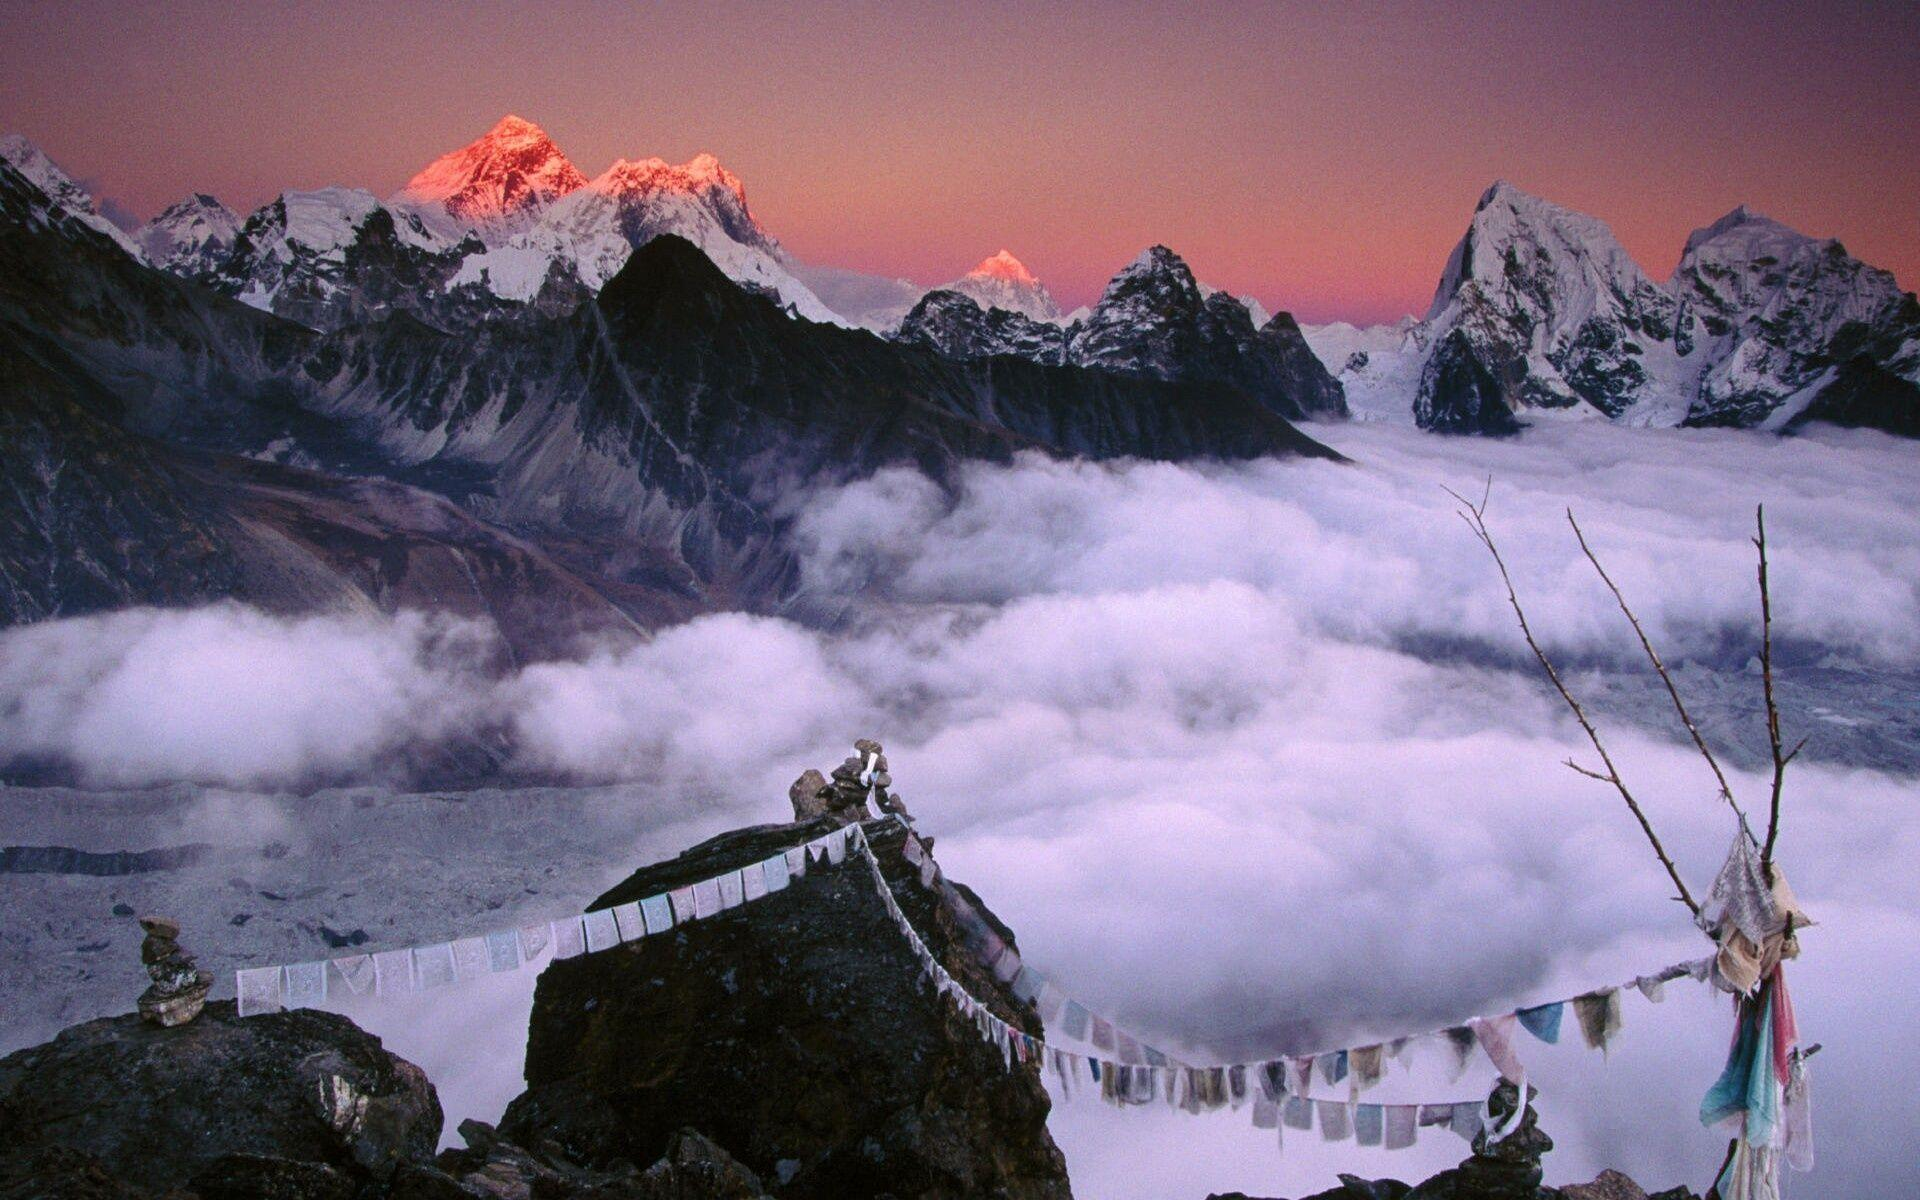 himalaya mountains hd wallpaper - photo #19